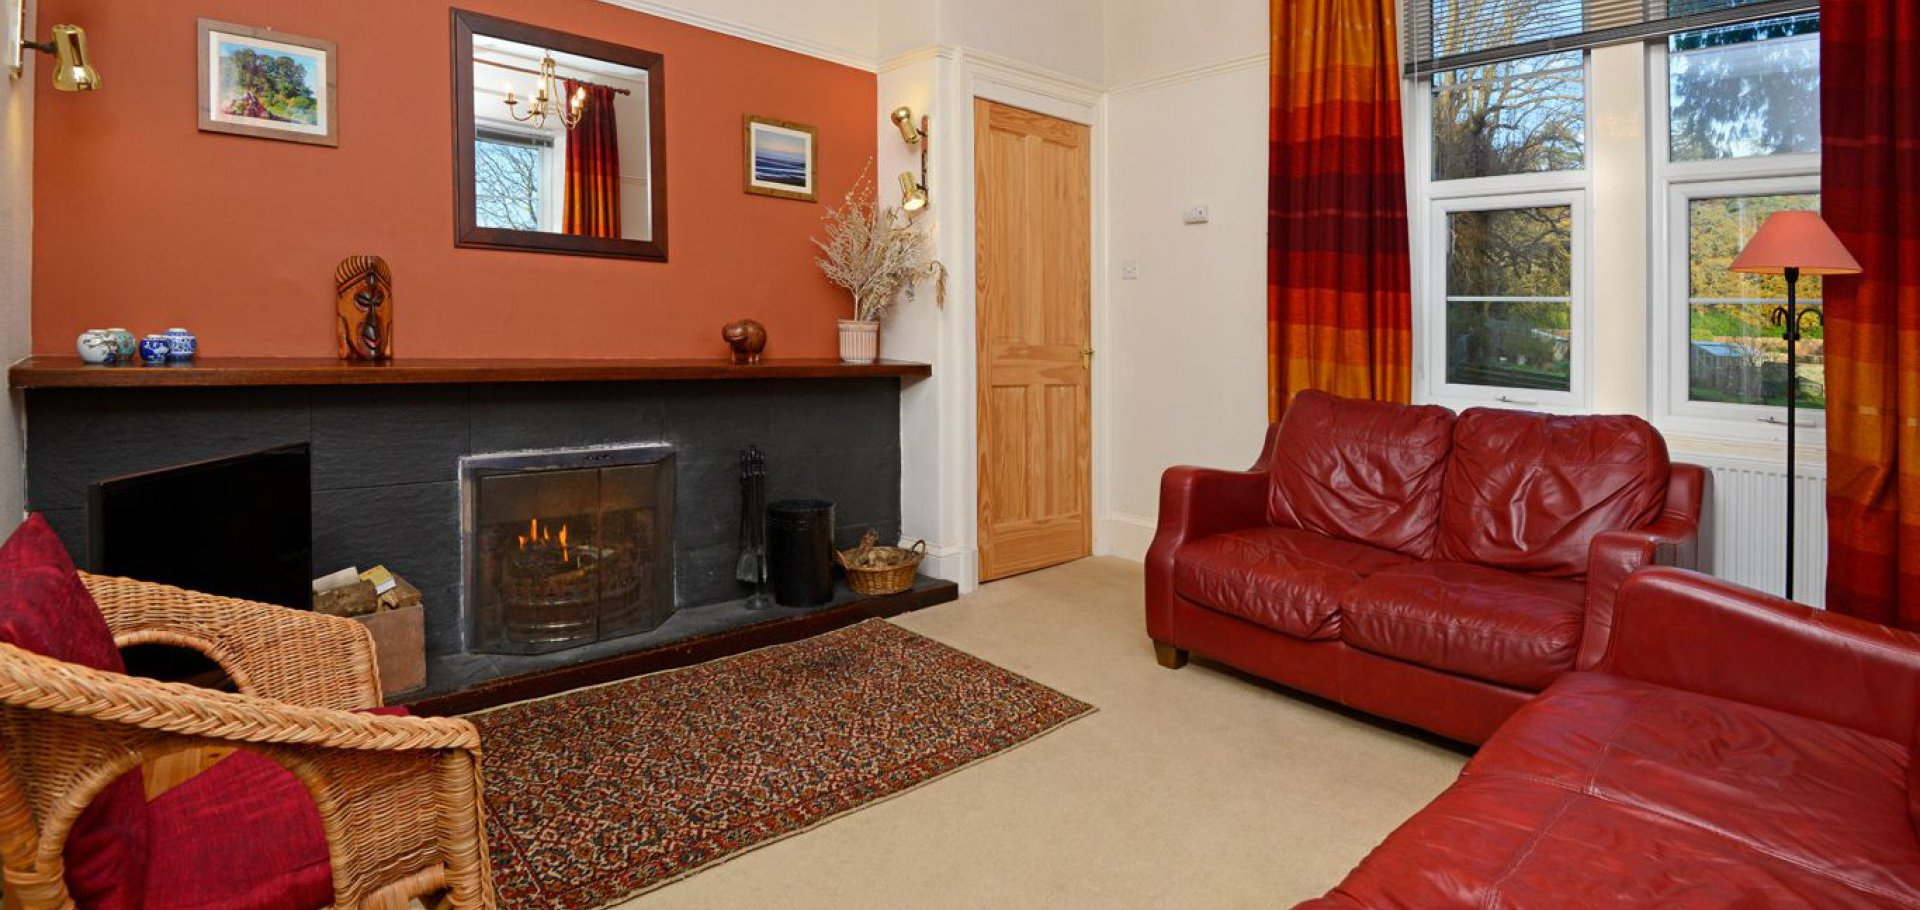 Sitting room at the Lodge self catering holiday accommodation near castle douglas in dumfries and galloway